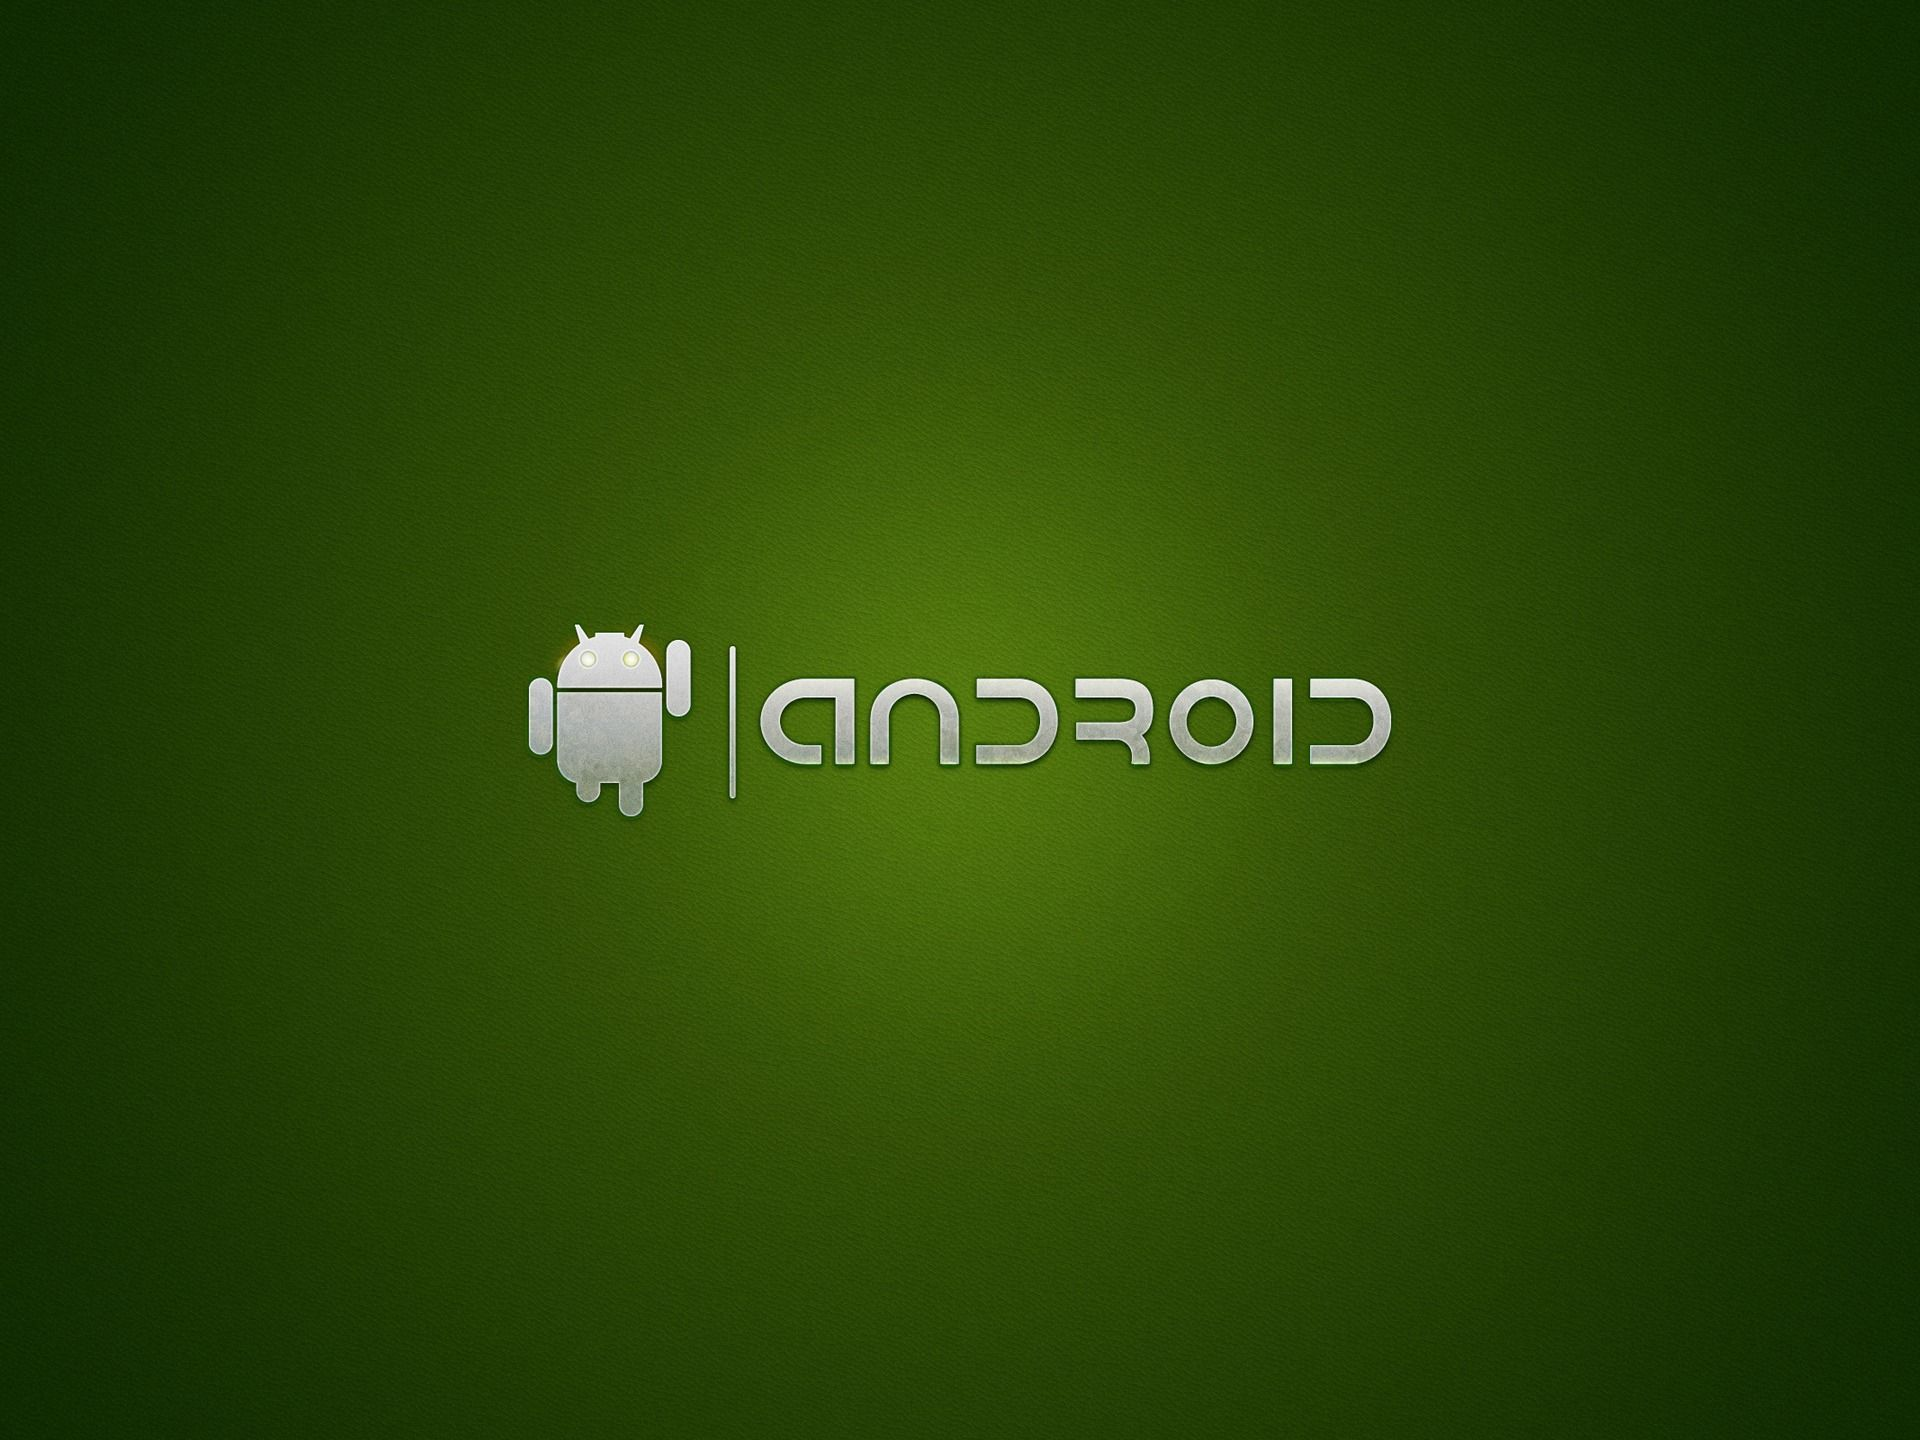 free android wallpapers and android backgrounds | android